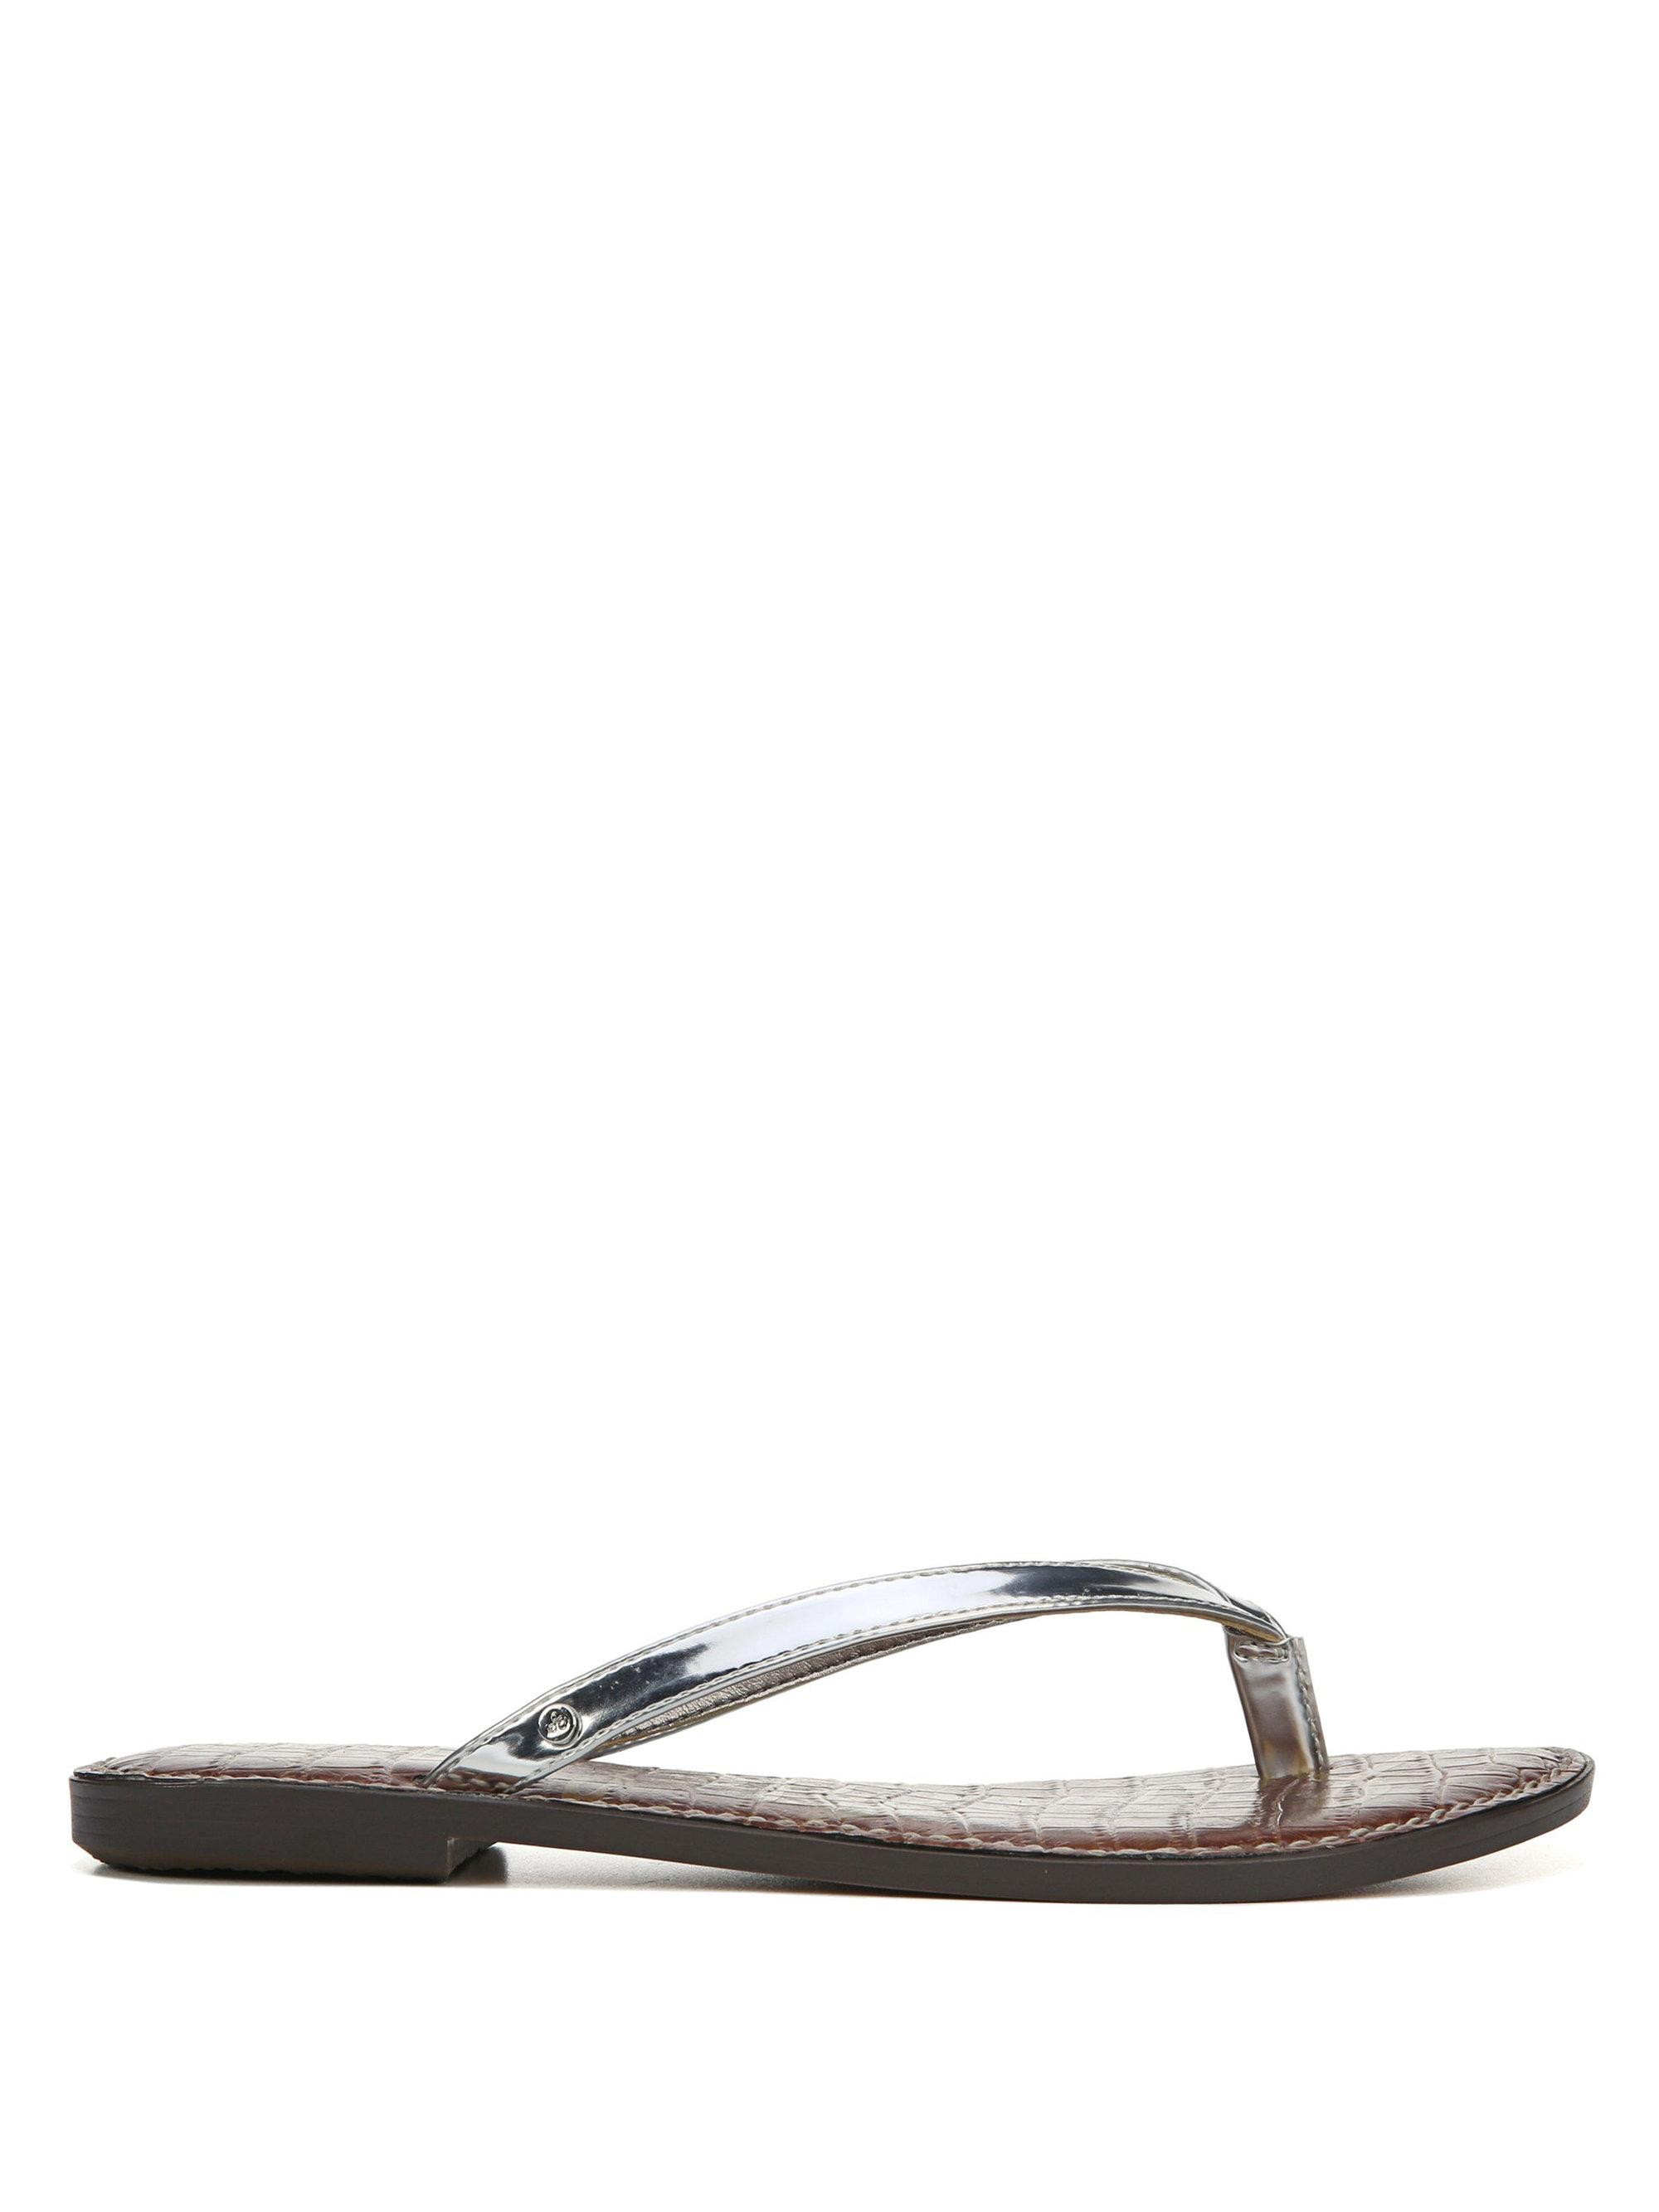 586ed44271d36a Lyst - Sam Edelman Gracie Liquid Metallic Leather Thong Sandals in ...